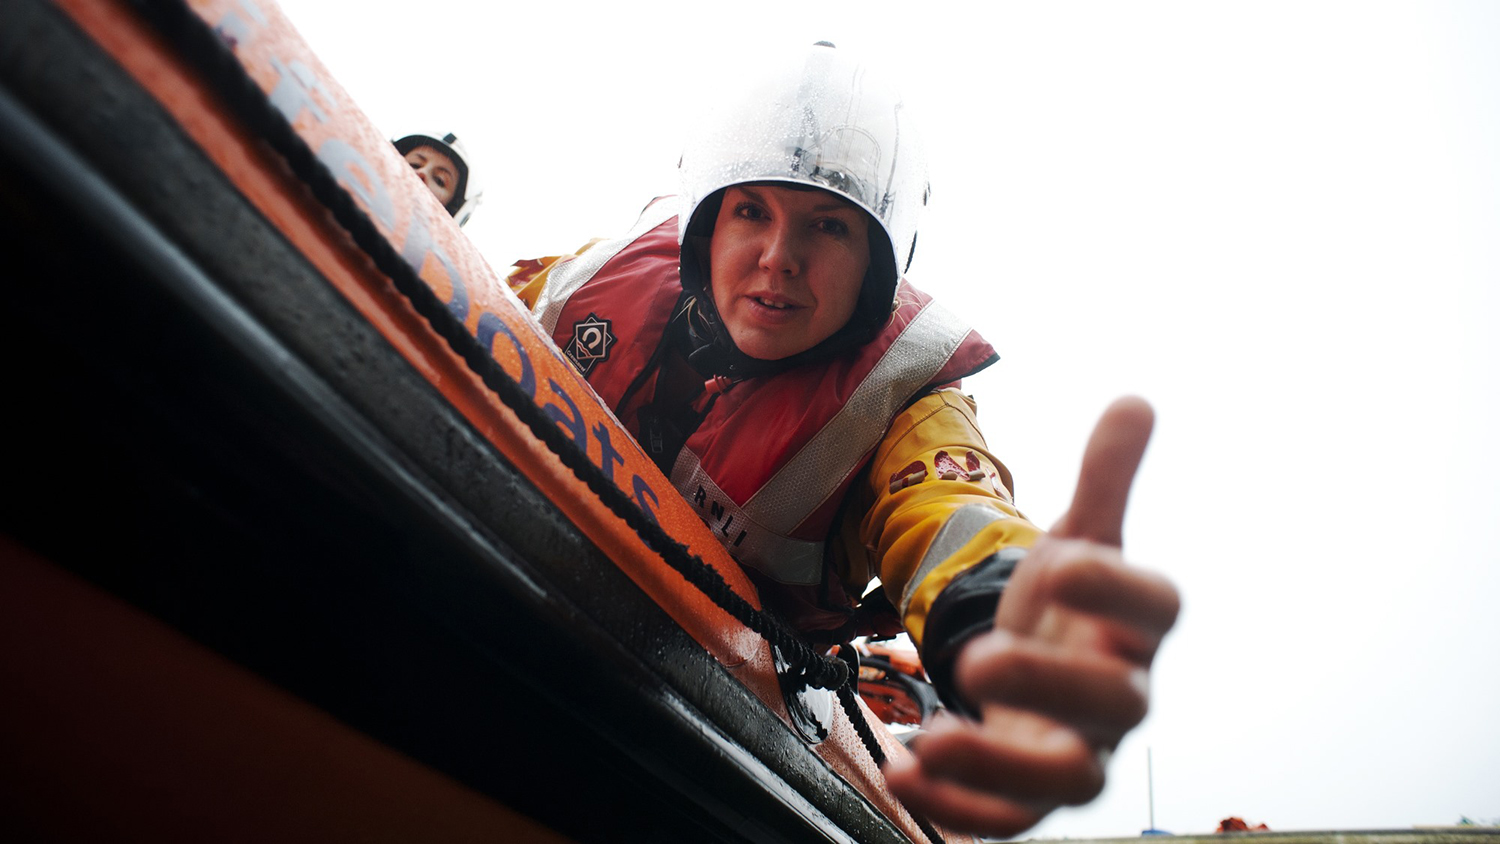 Kinsale RNLI crew member reaching out from their B class Atlantic inshore lifeboat to help a casualty